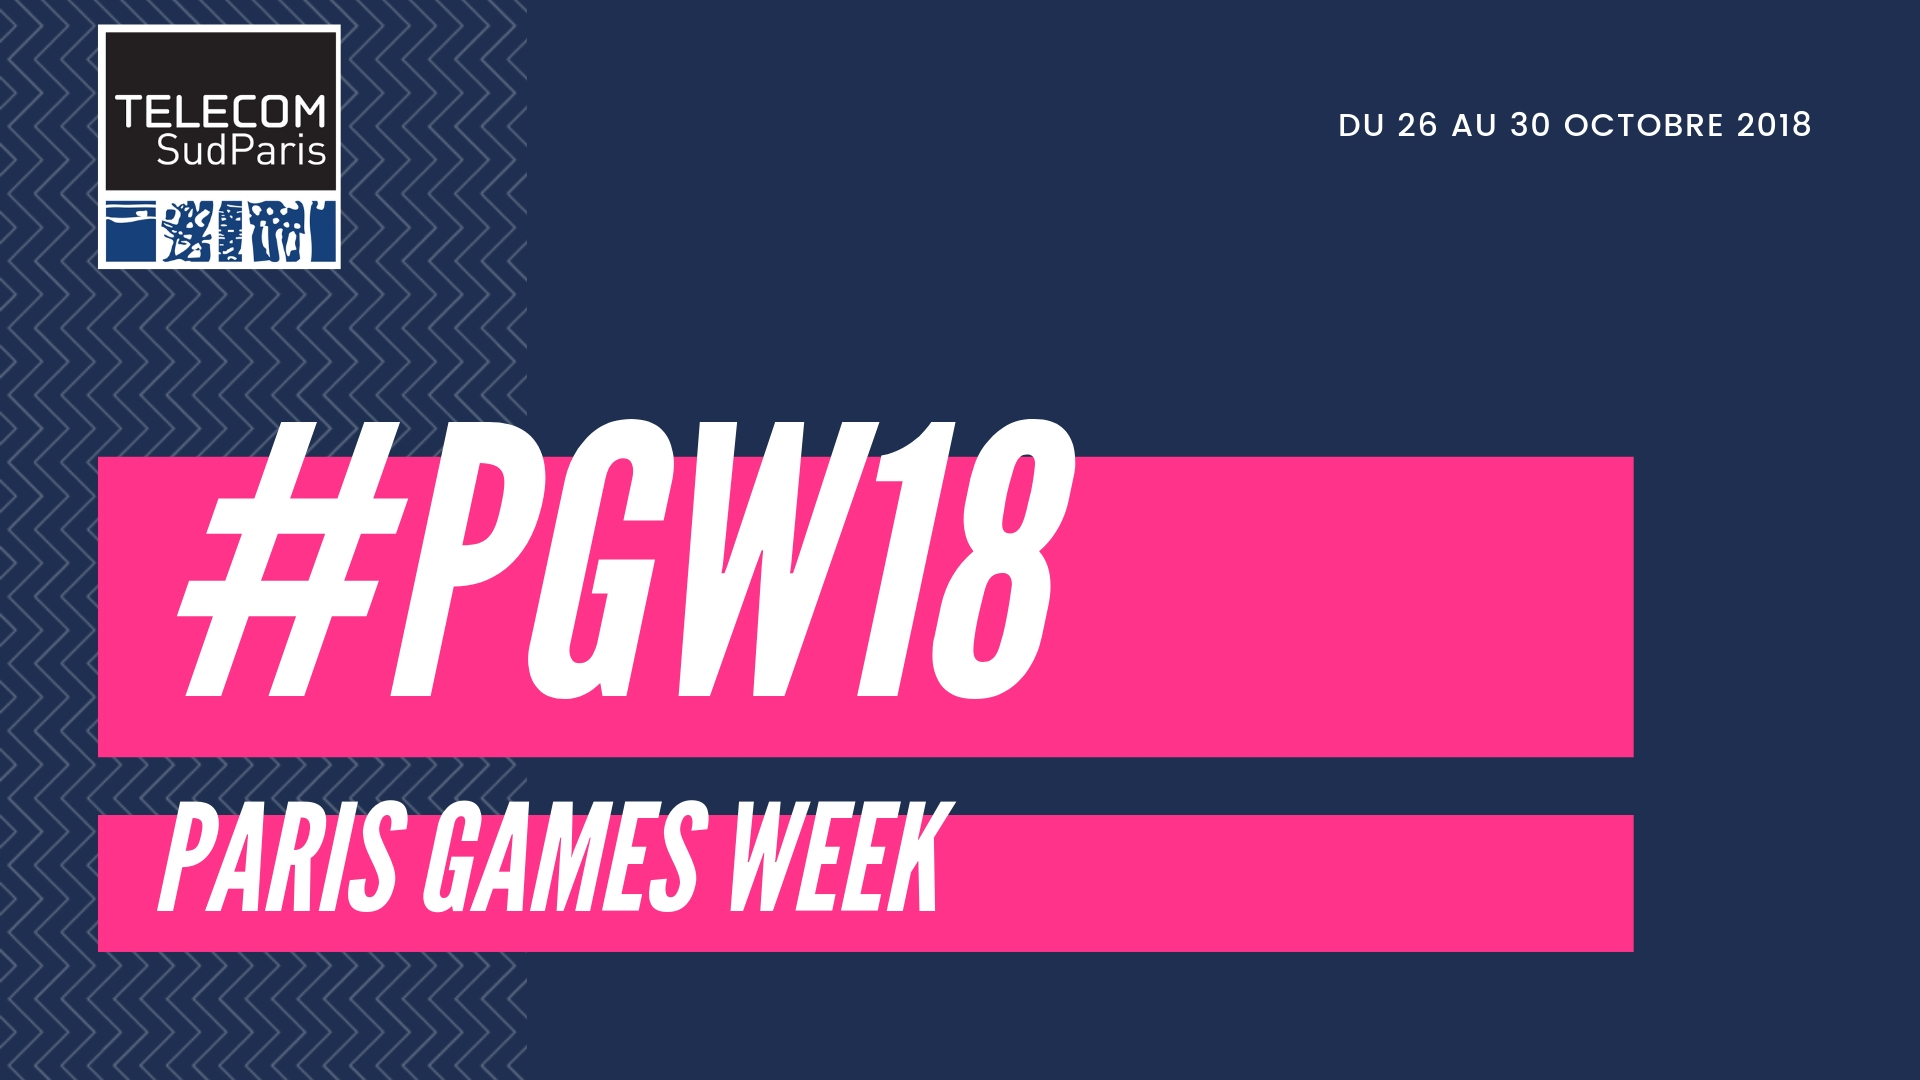 Affiche Paris Games Week 2018 avec hastag #PGW18